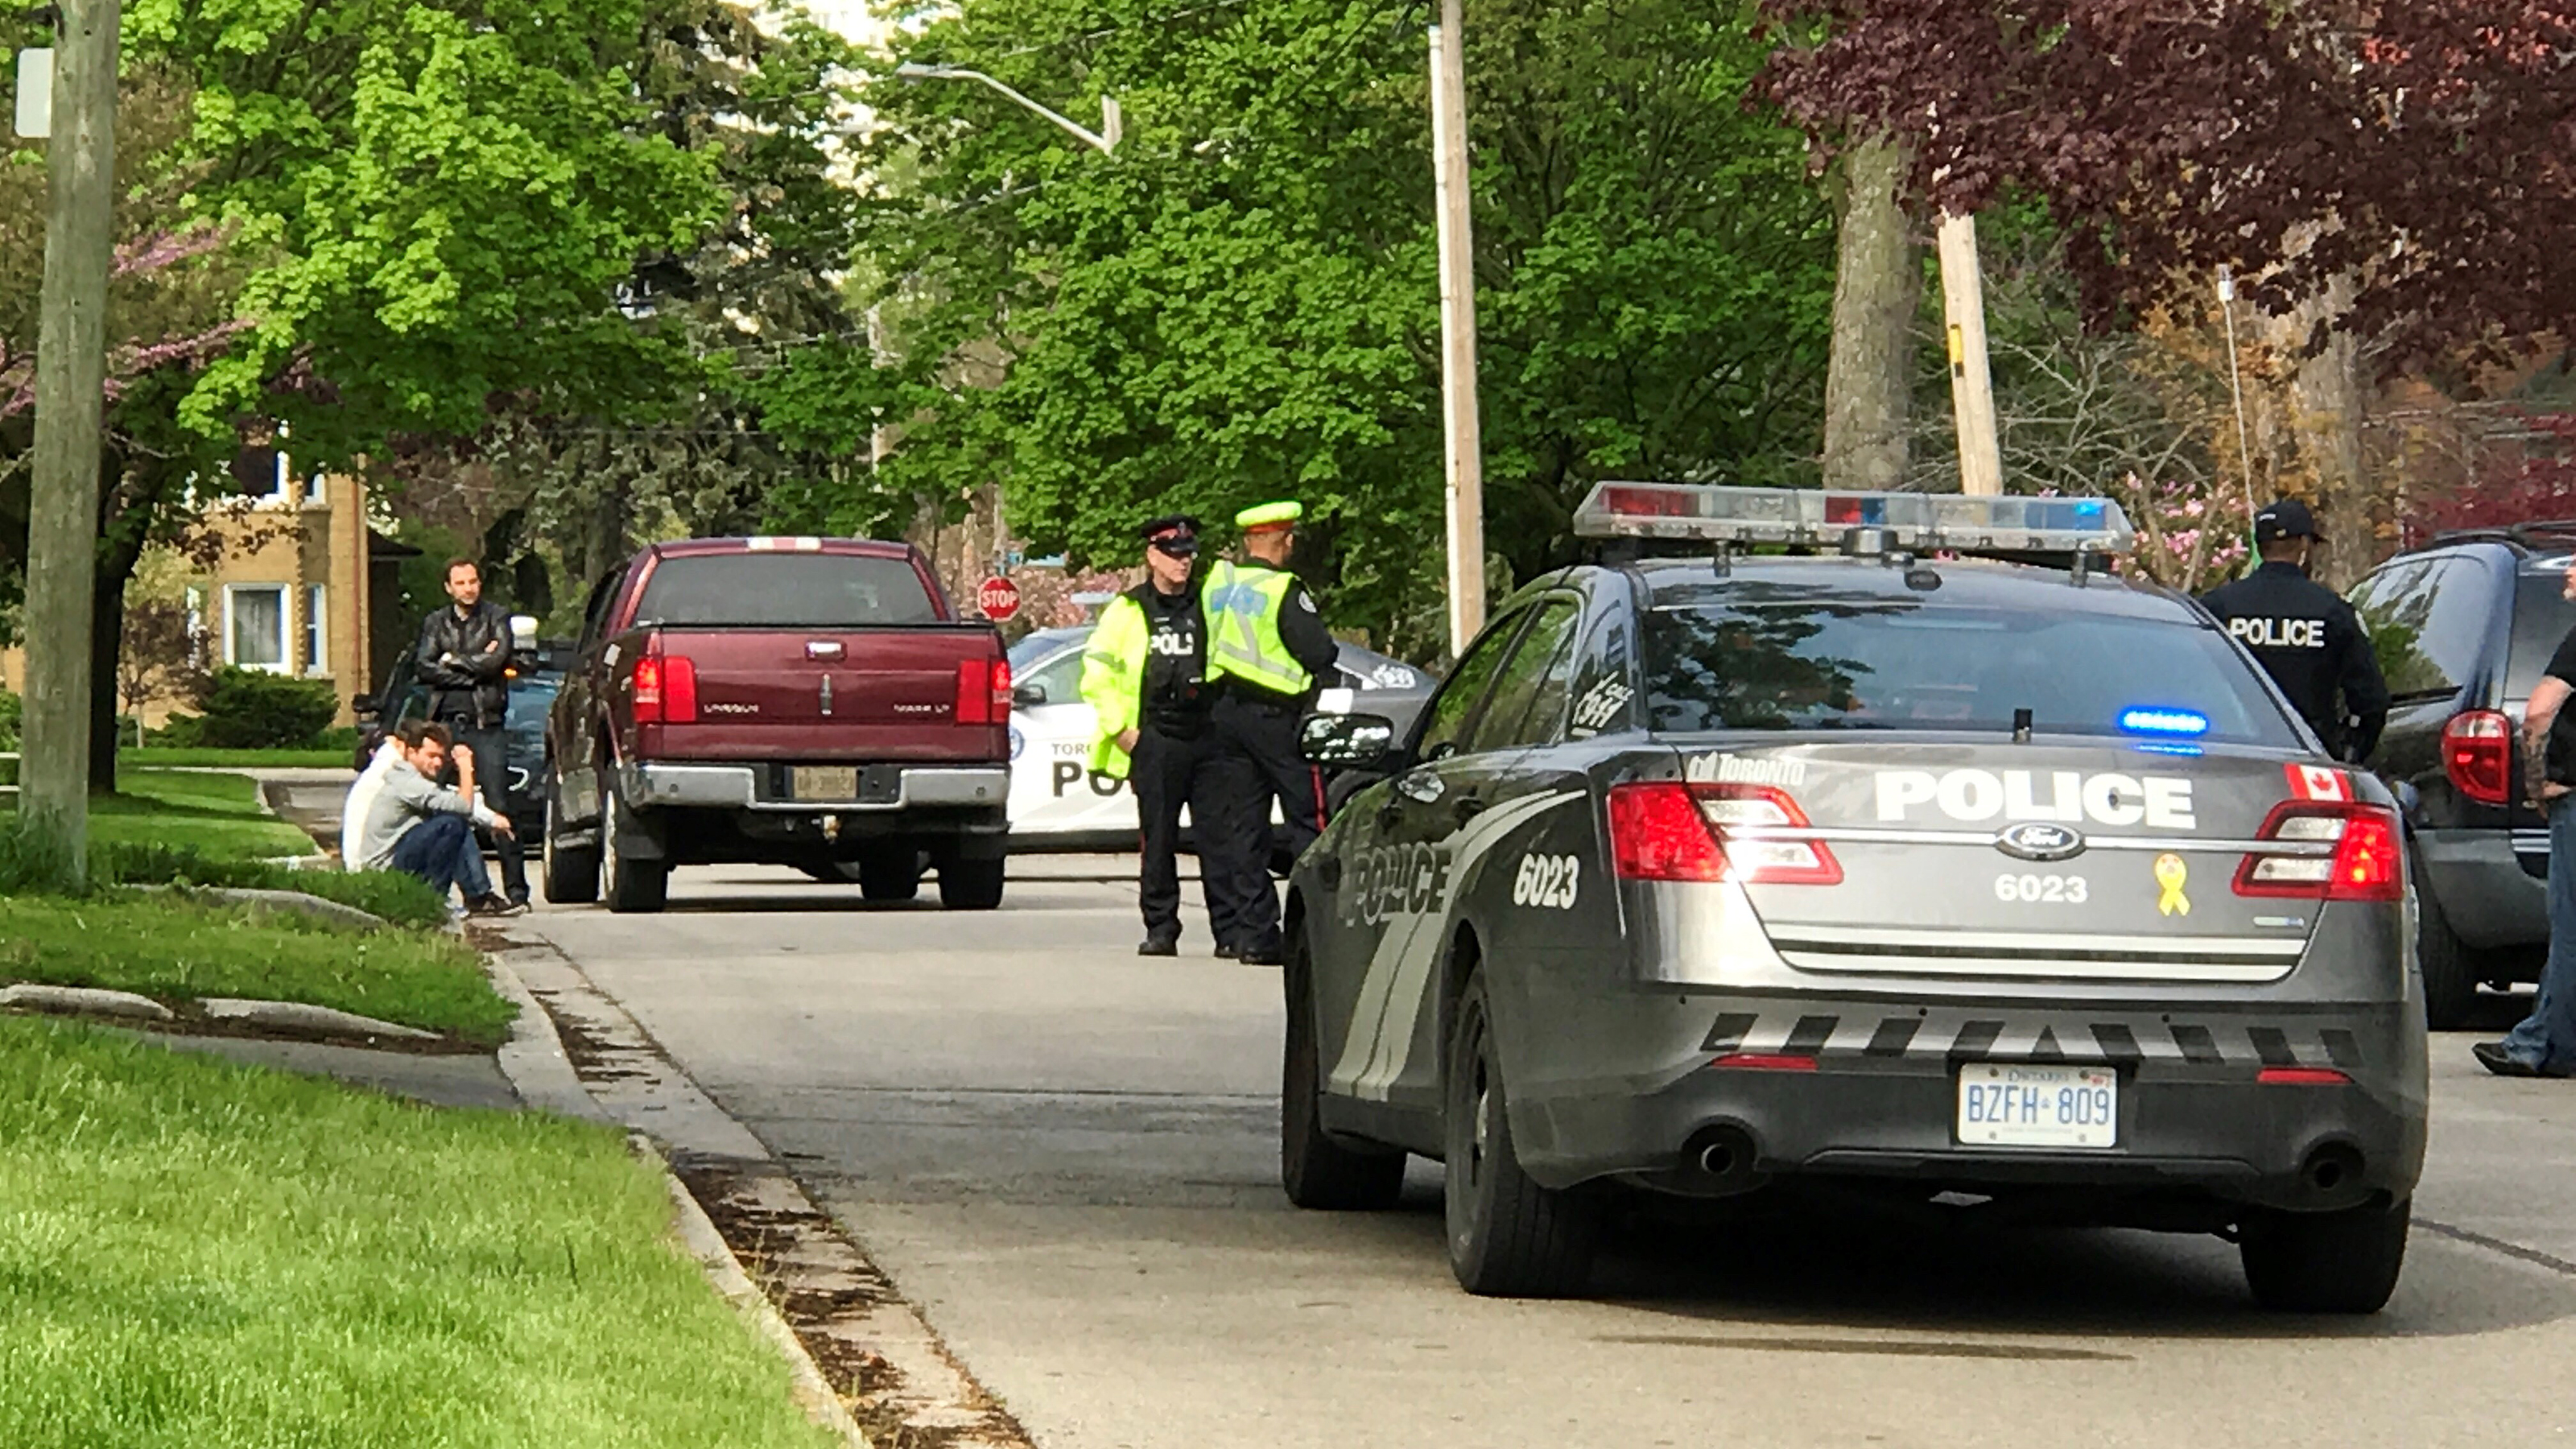 Police investigate after a boy was hit by a pickup truck on Stanley Avenue in Etobicoke on May 19, 2018. CITYNEWS/George Joseph